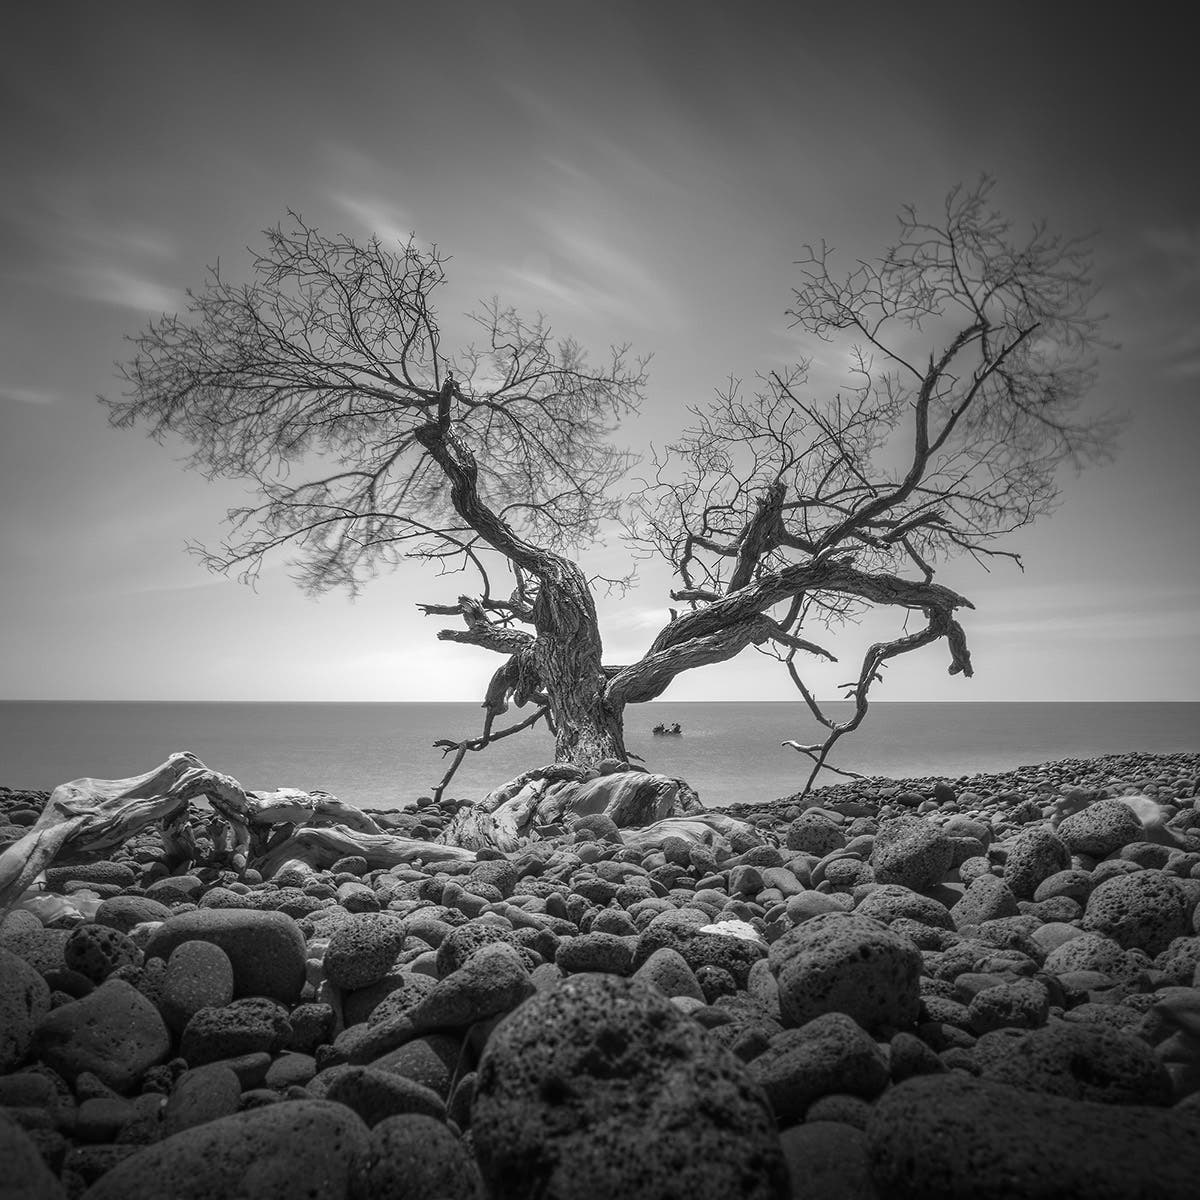 Daniel Tjongari's Black and White Photos of Lone Mangroves Will Put You in Awe